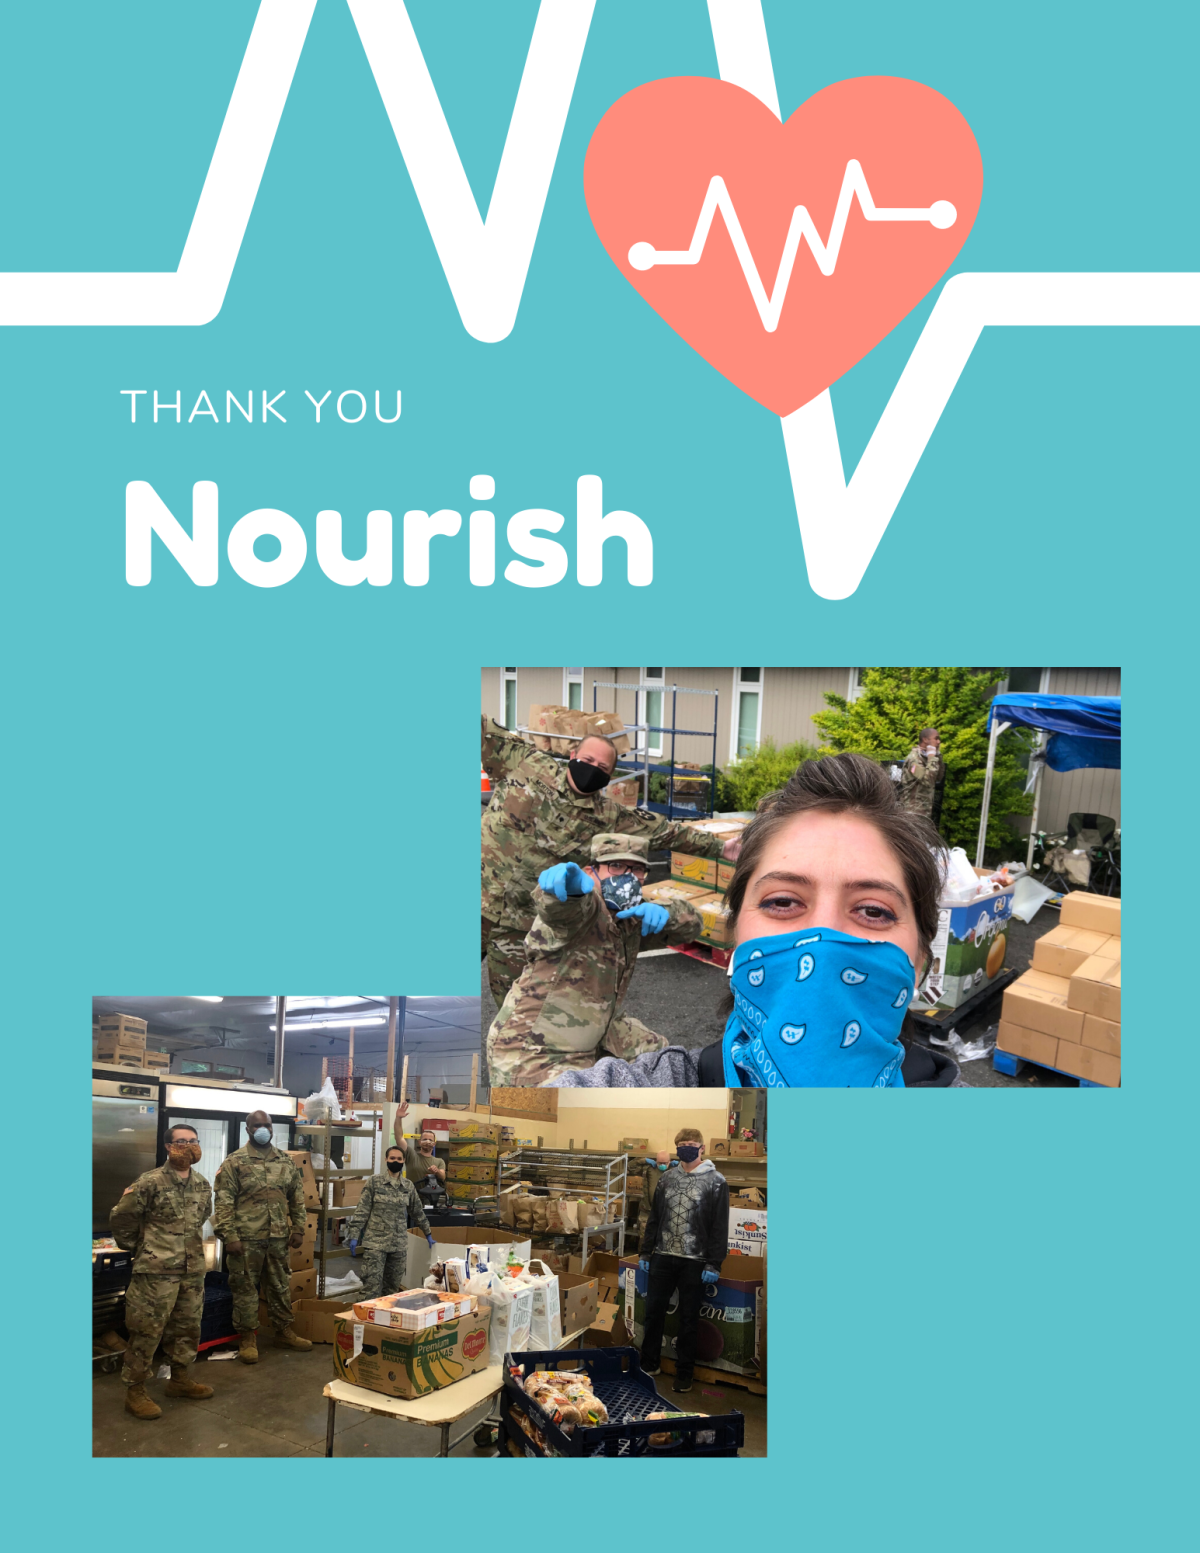 THANK YOU NOURISH!